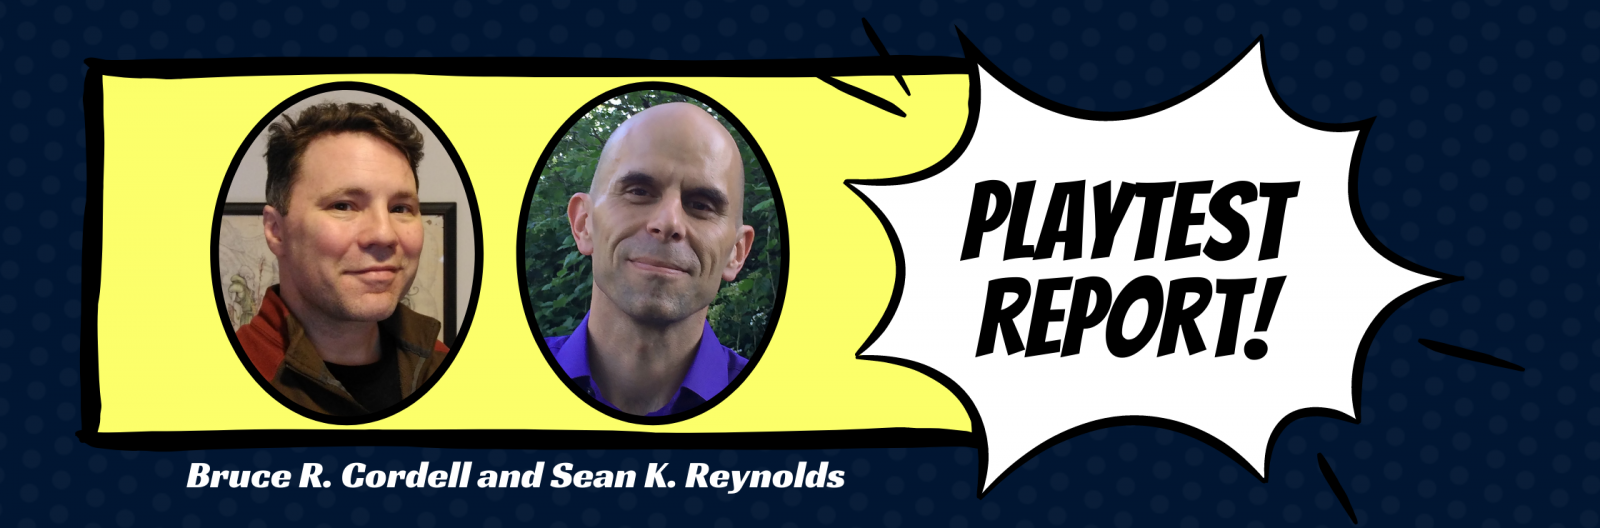 Images of designers Bruce and Sean with graphic text reading: Playtest Report